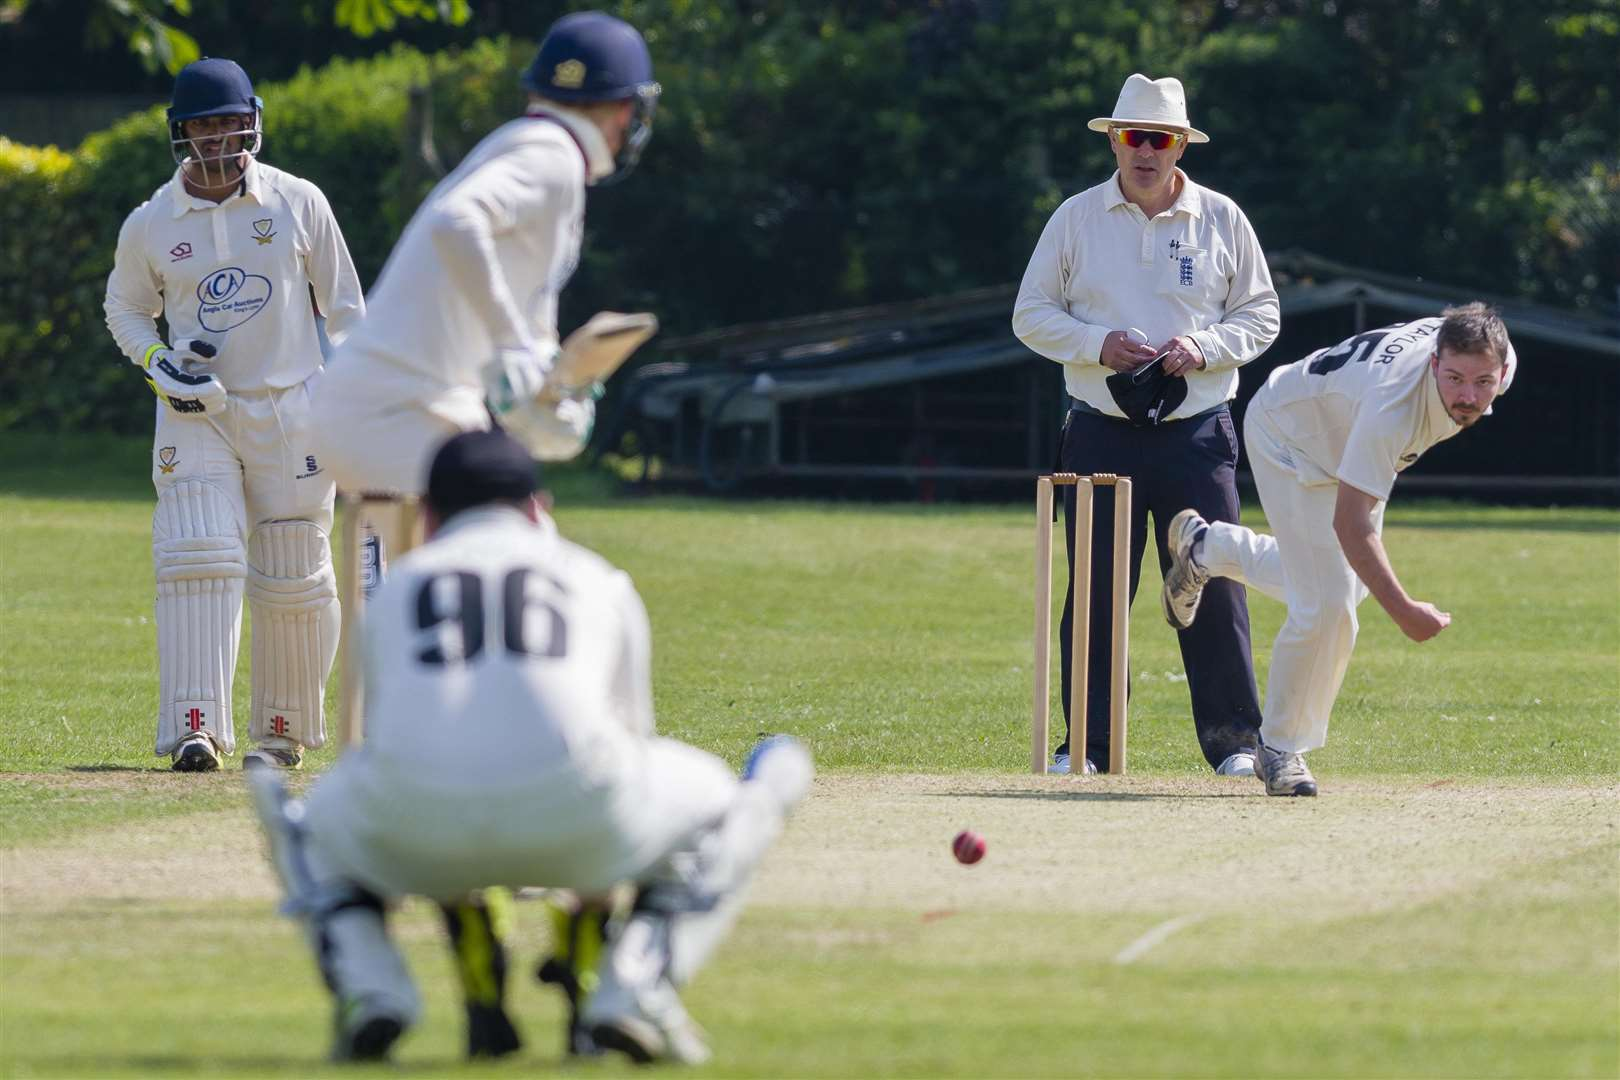 Diss, Norfolk. Cricket action from Diss vs Stow - Diss Bowling - Dan Taylor...Picture: Mark Bullimore Photography. (2239339)